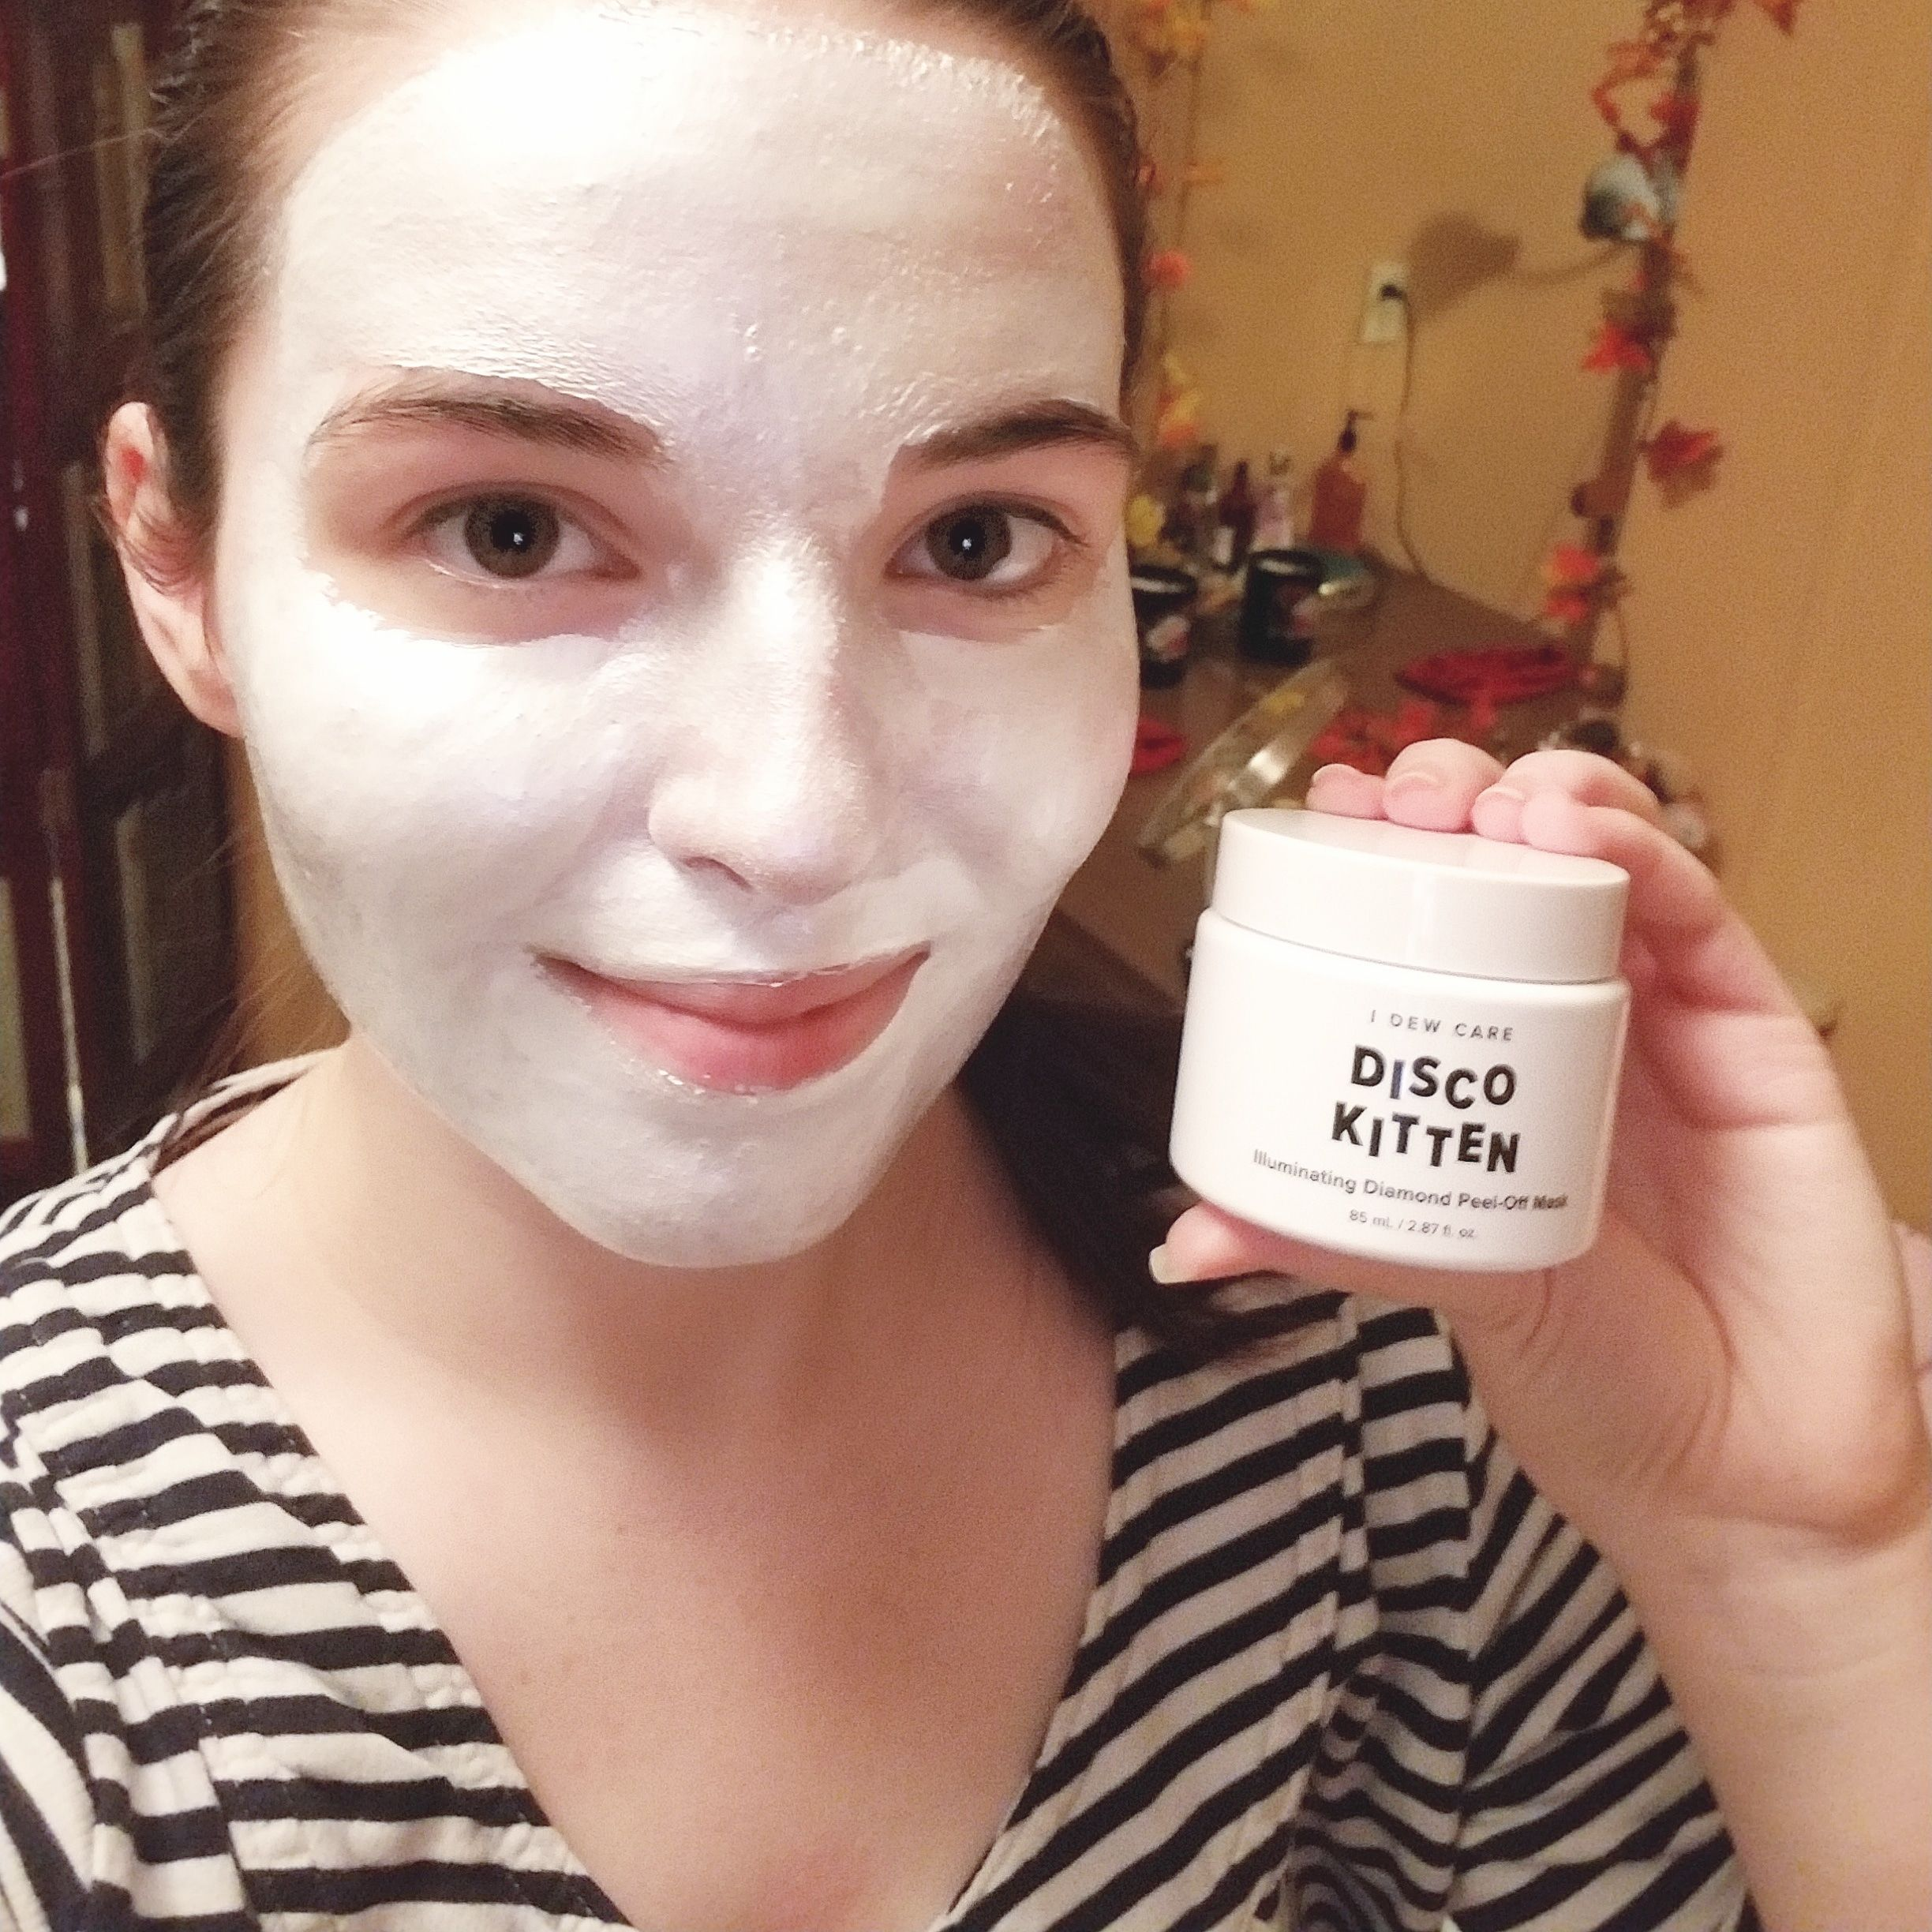 I Dew Care Disco Kitten Girlchickbetty In 2020 Face Washing Routine Face Mask Reviews Proper Skin Care